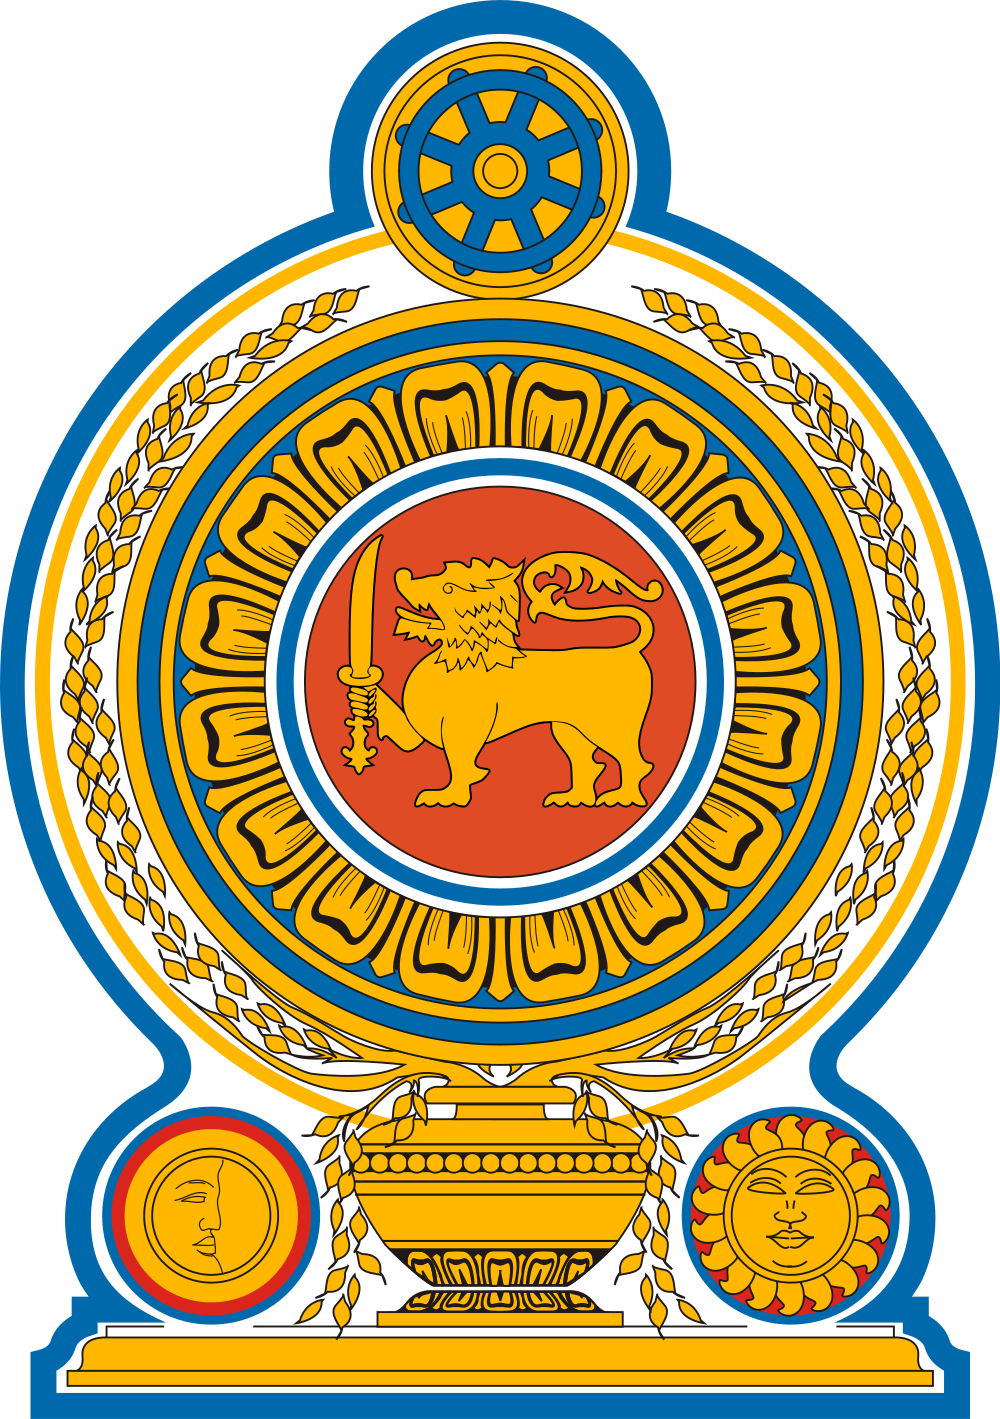 Consulate General of the Democratic Socialist Republic of Sri Lanka